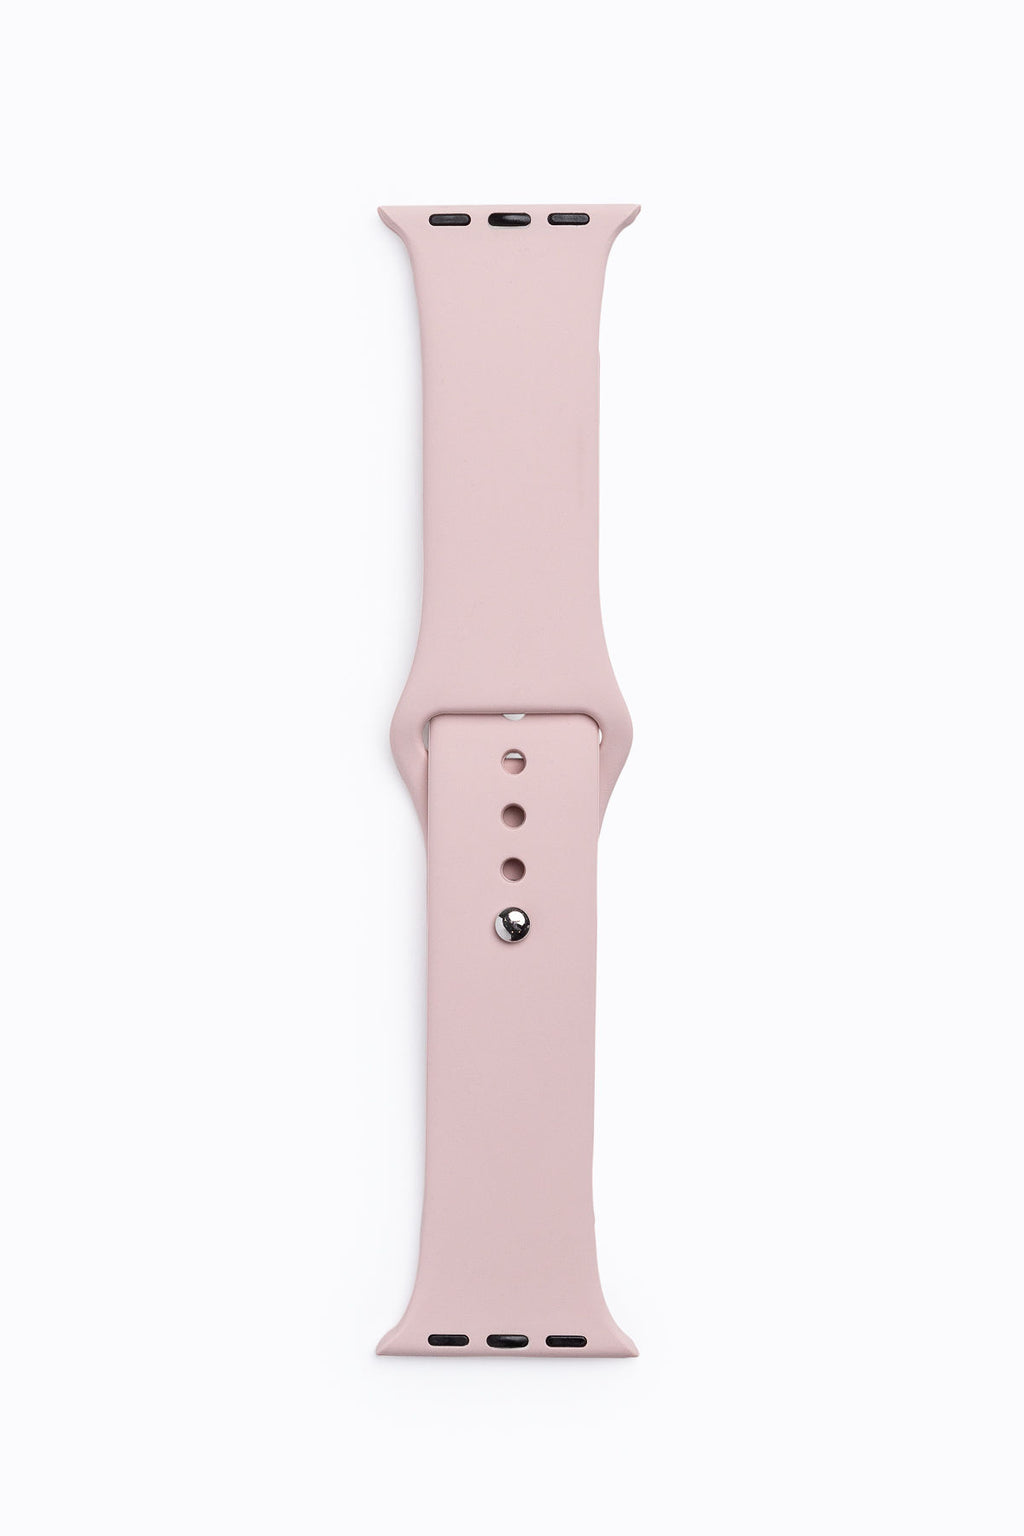 Apple Watch Band in Blush Silicone